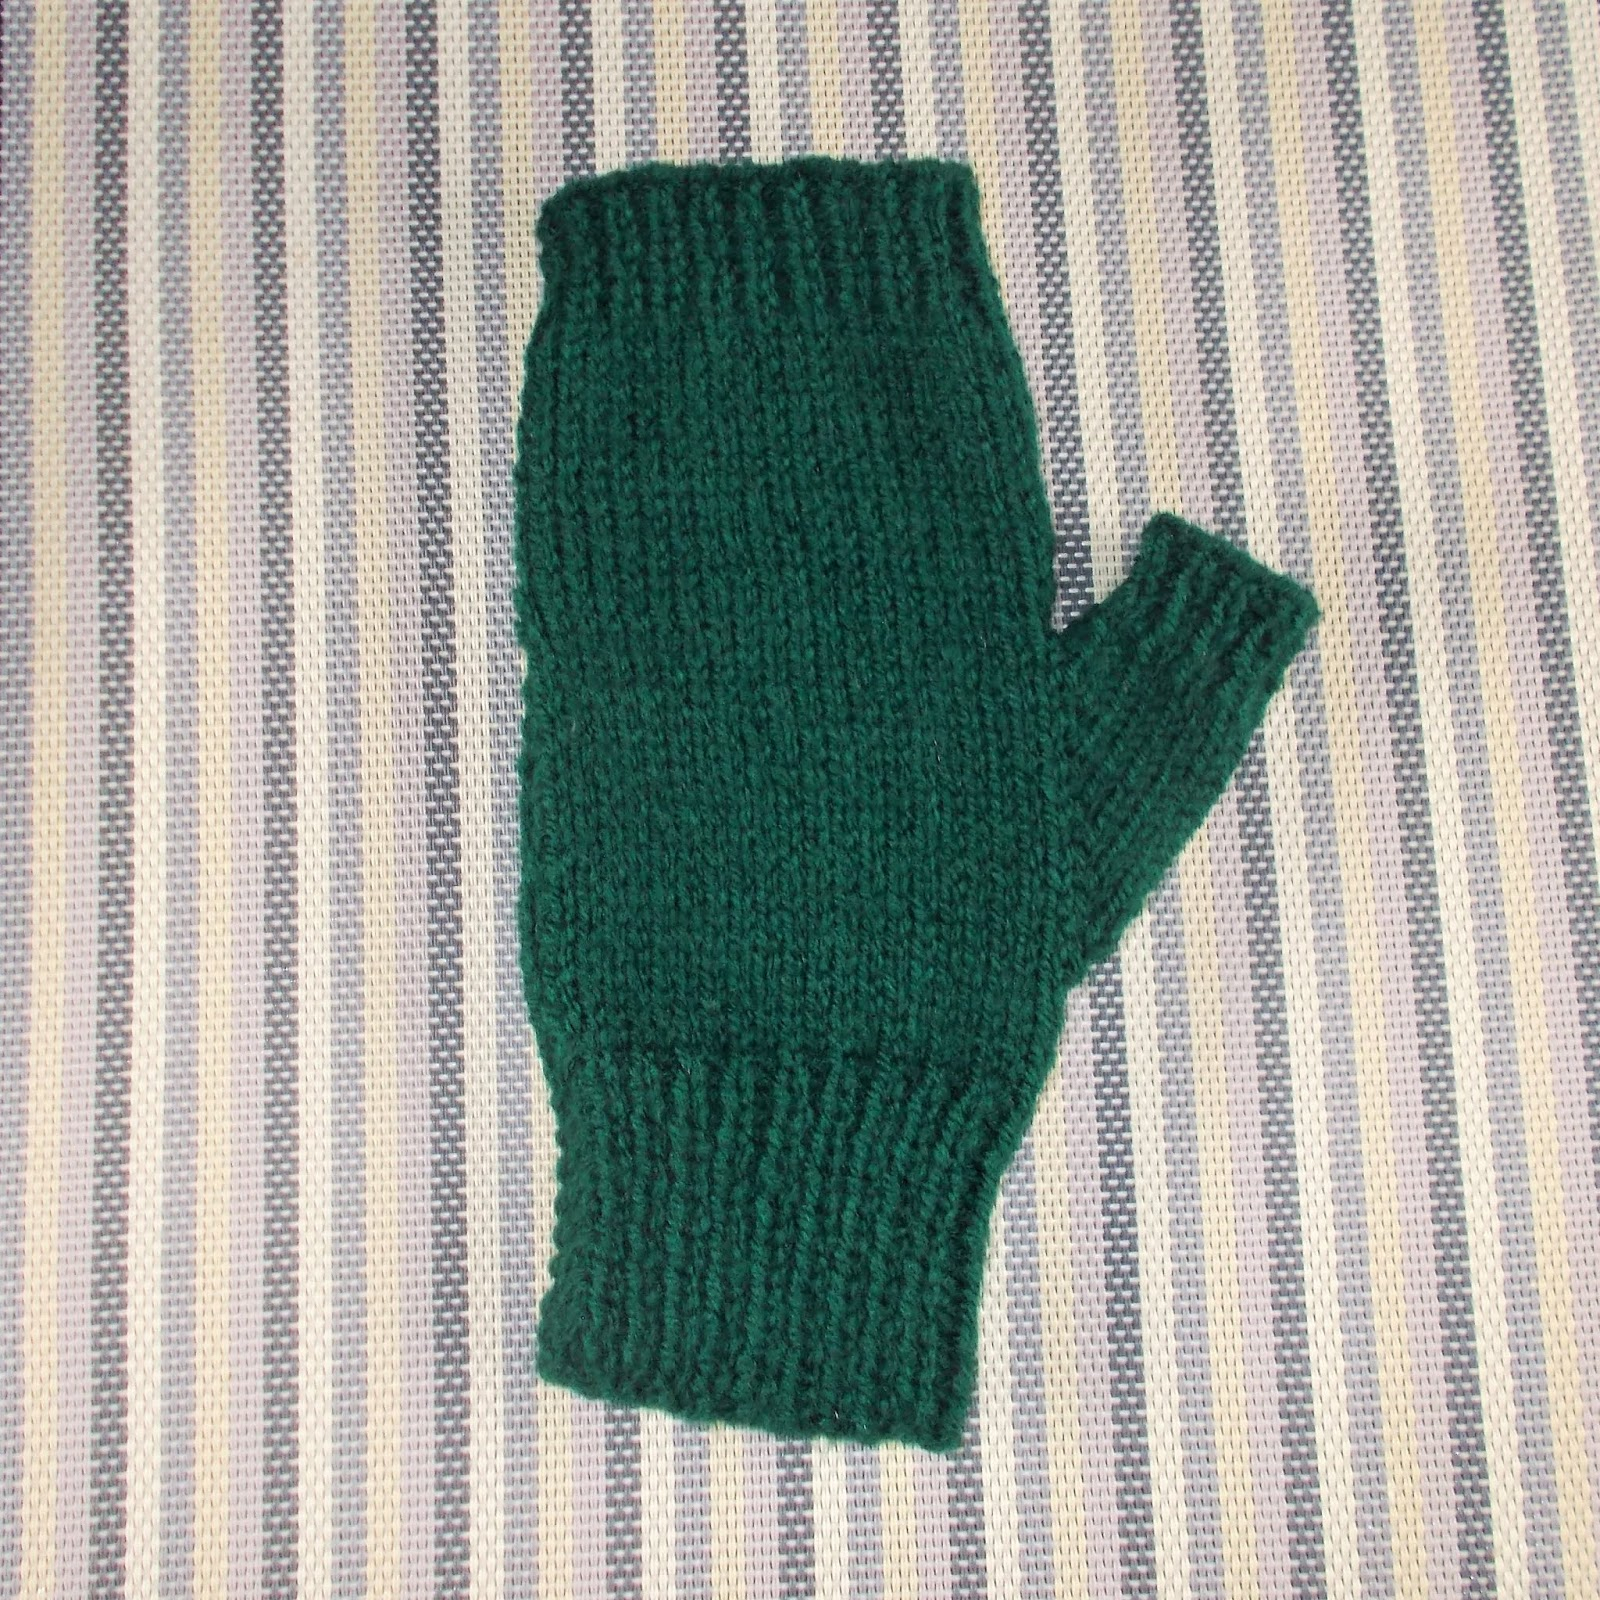 Mens Fingerless Gloves Knit Pattern Mariannas Lazy Daisy Days Easy Fingerless Mens Mitts With Thumbs